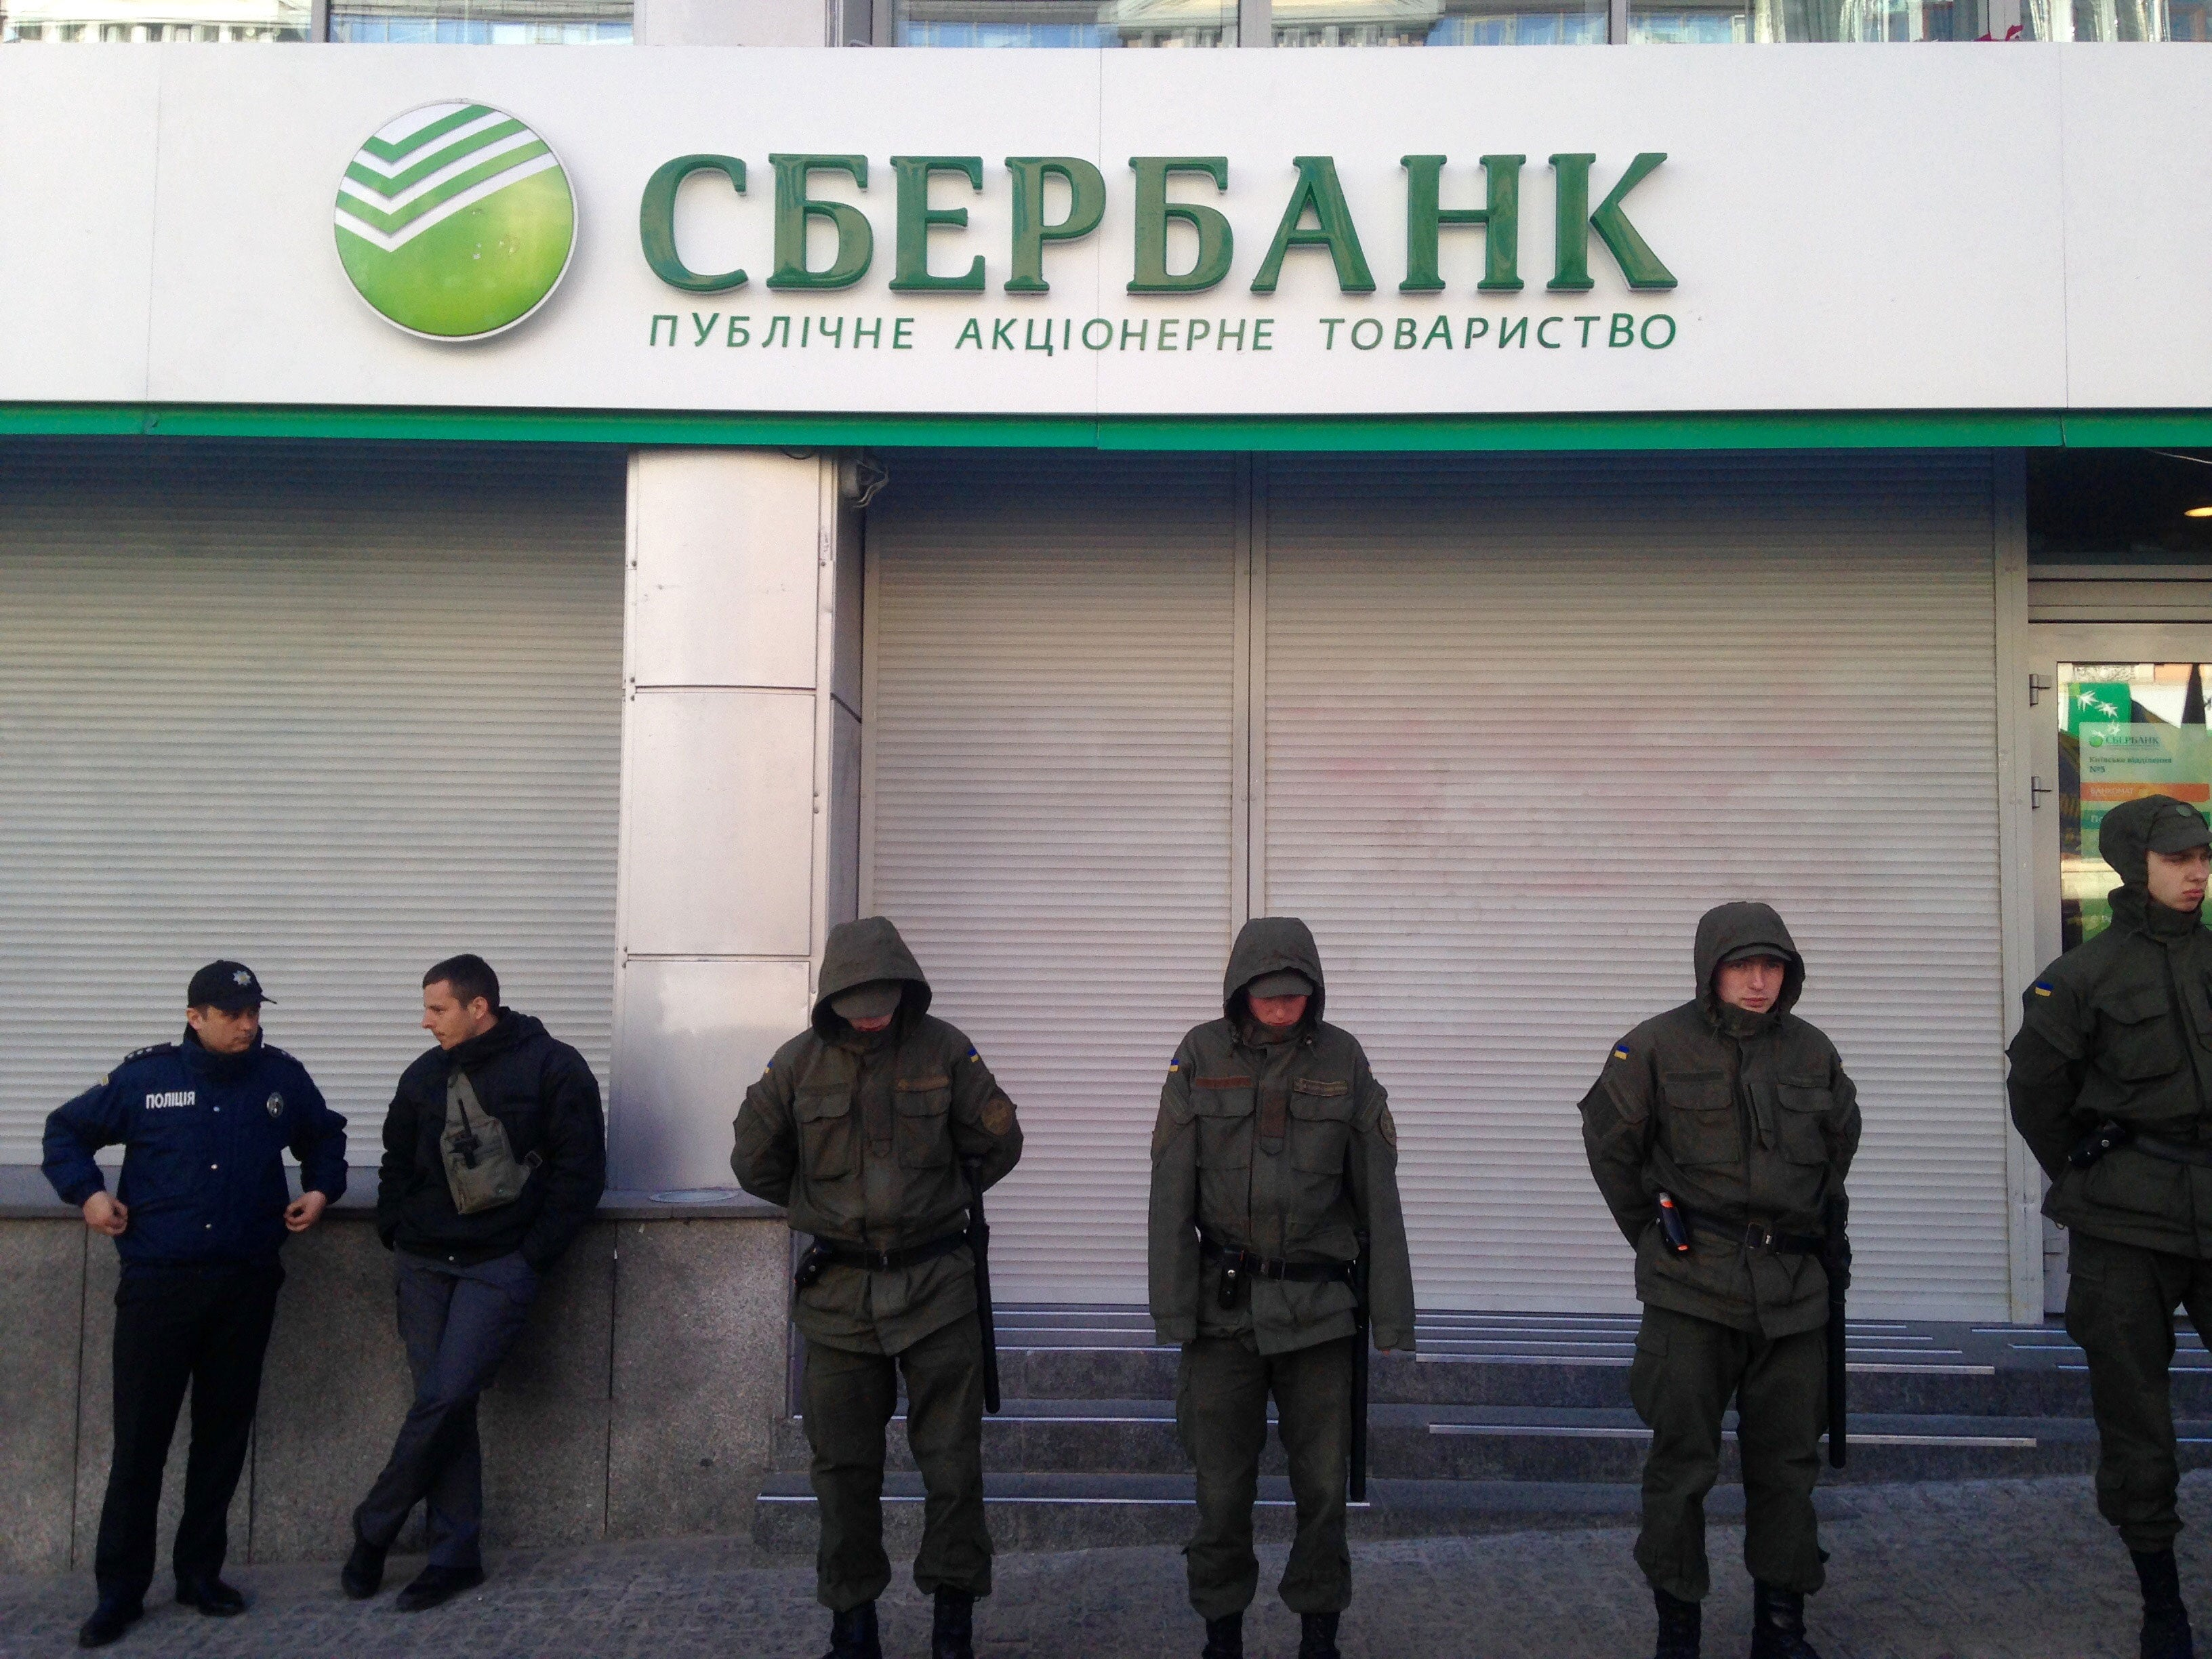 Ukrainian police on guard in front of a Russian bank in central Kyiv.